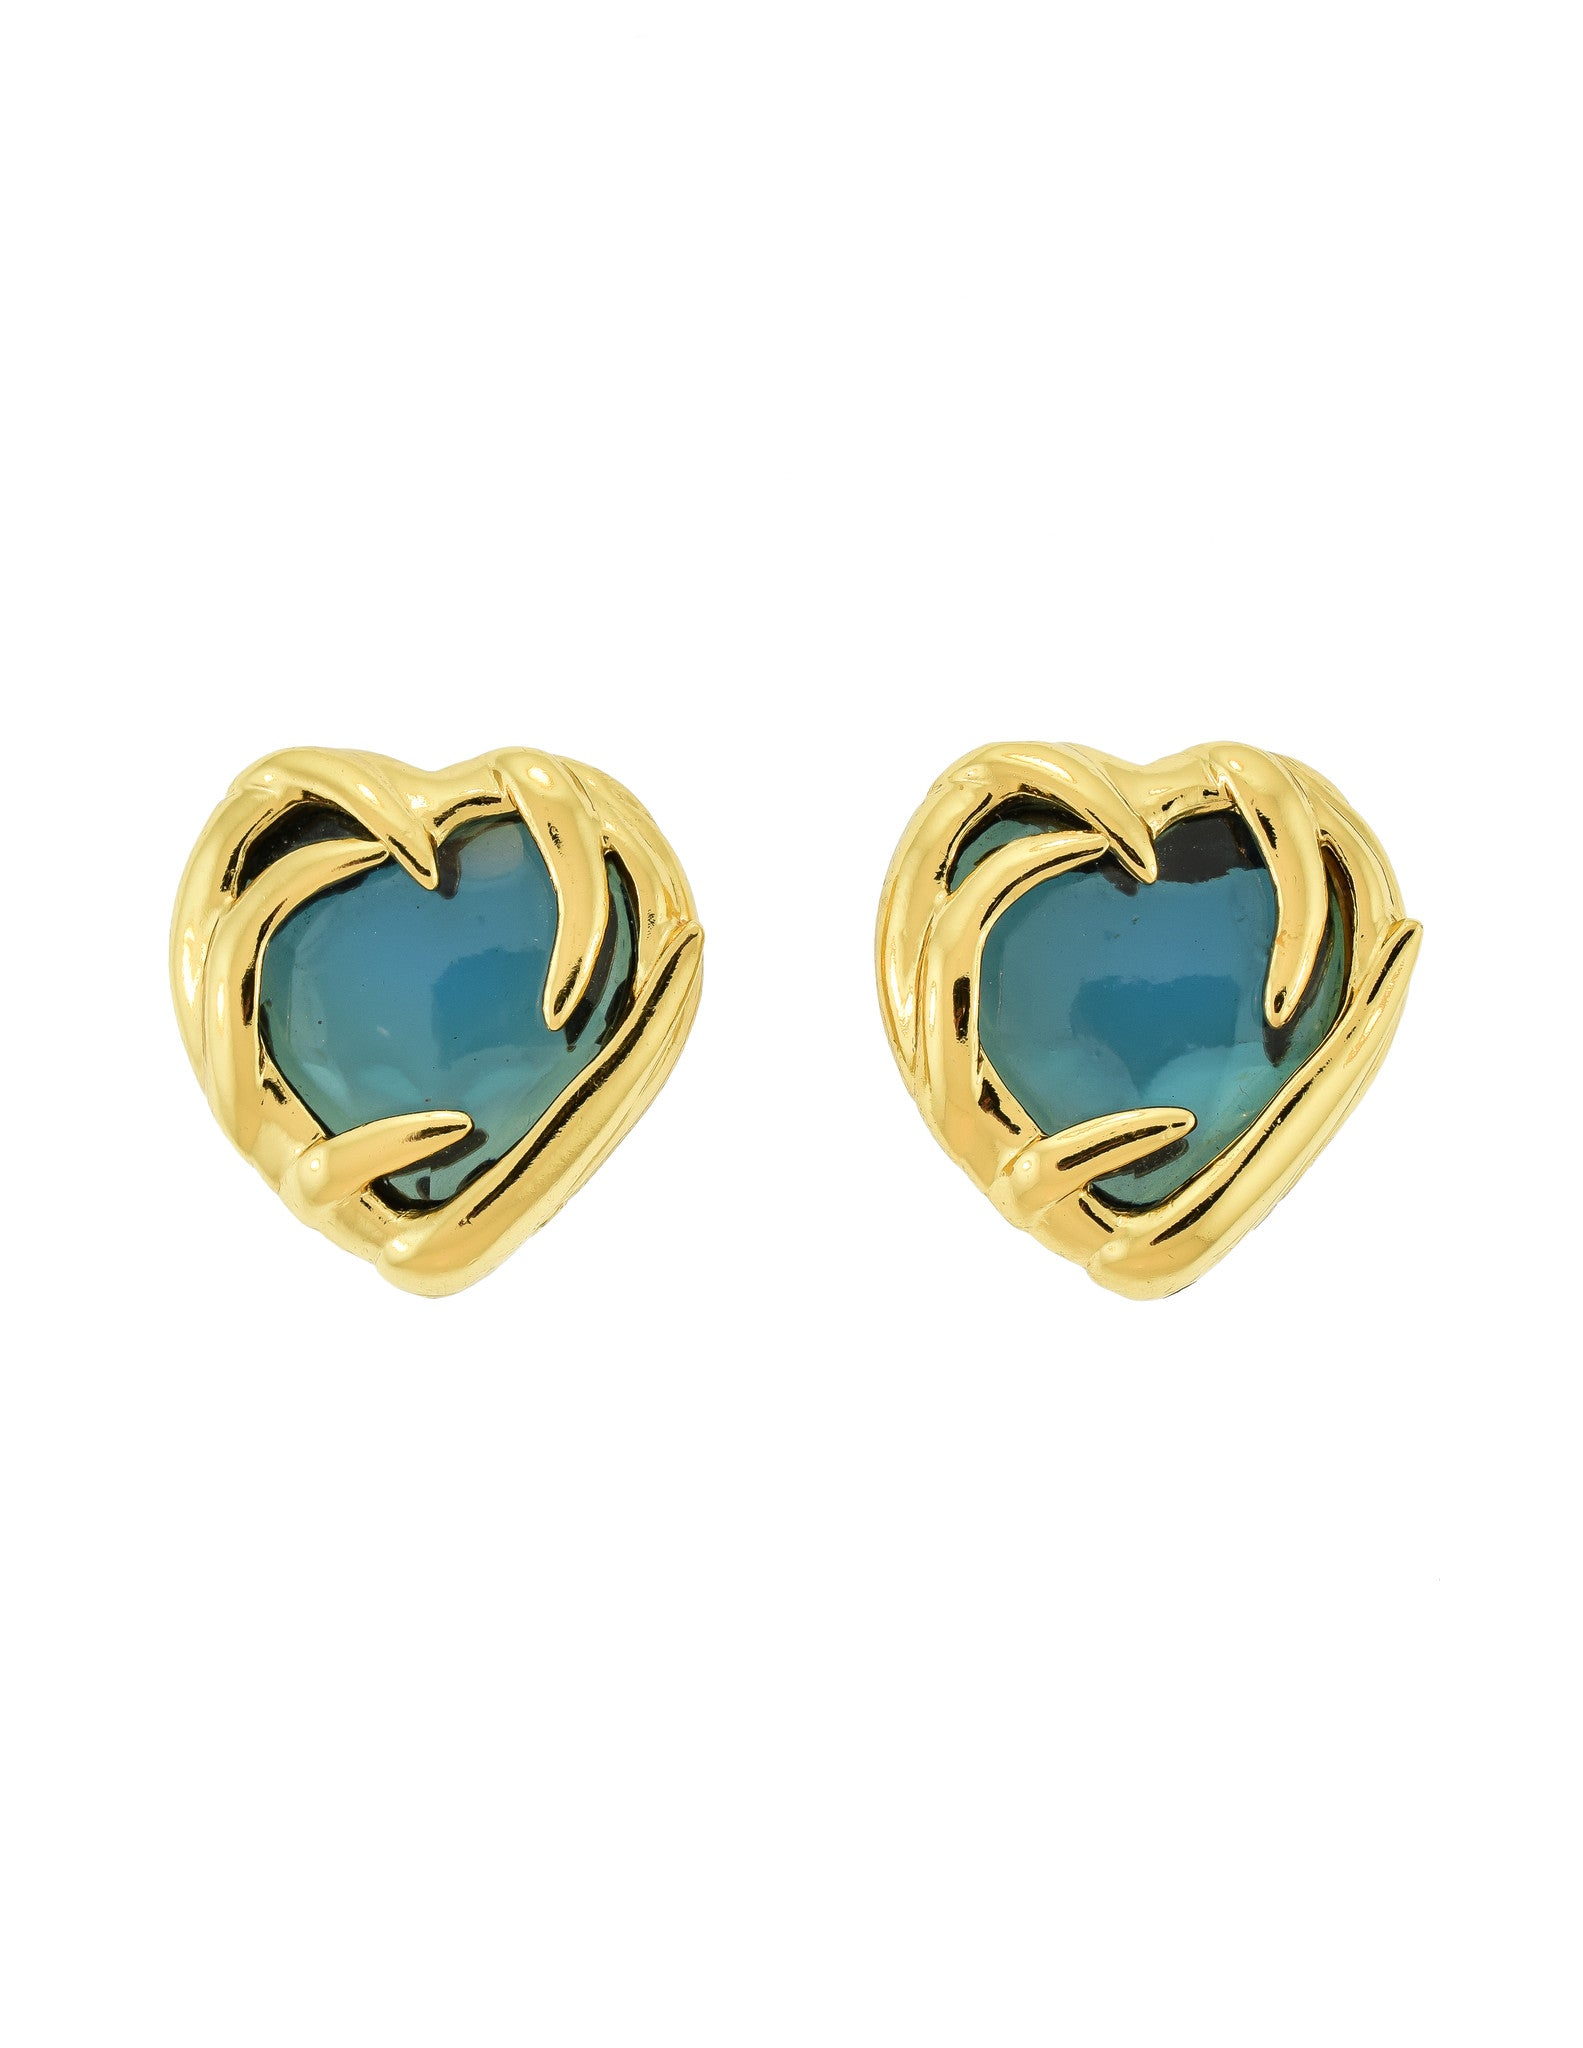 YSL Vintage Gold Green Gripoix Glass Heart Earrings - Amarcord Vintage Fashion  - 1